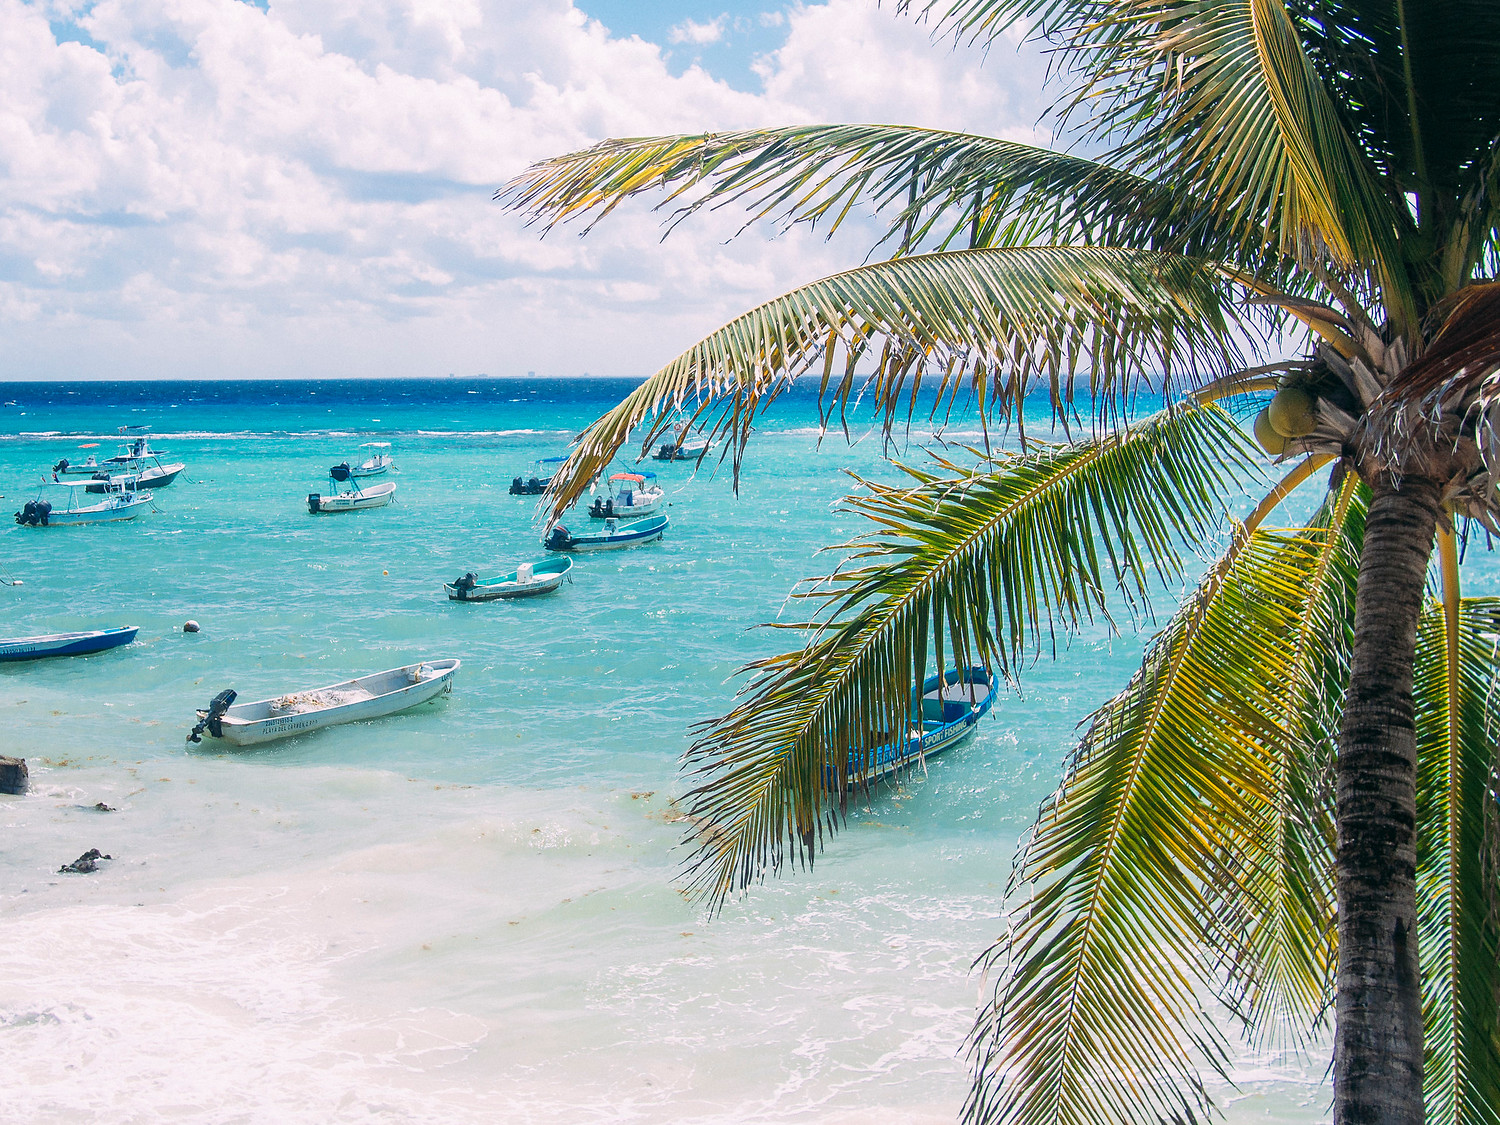 Playa del Carmen beach with boats.